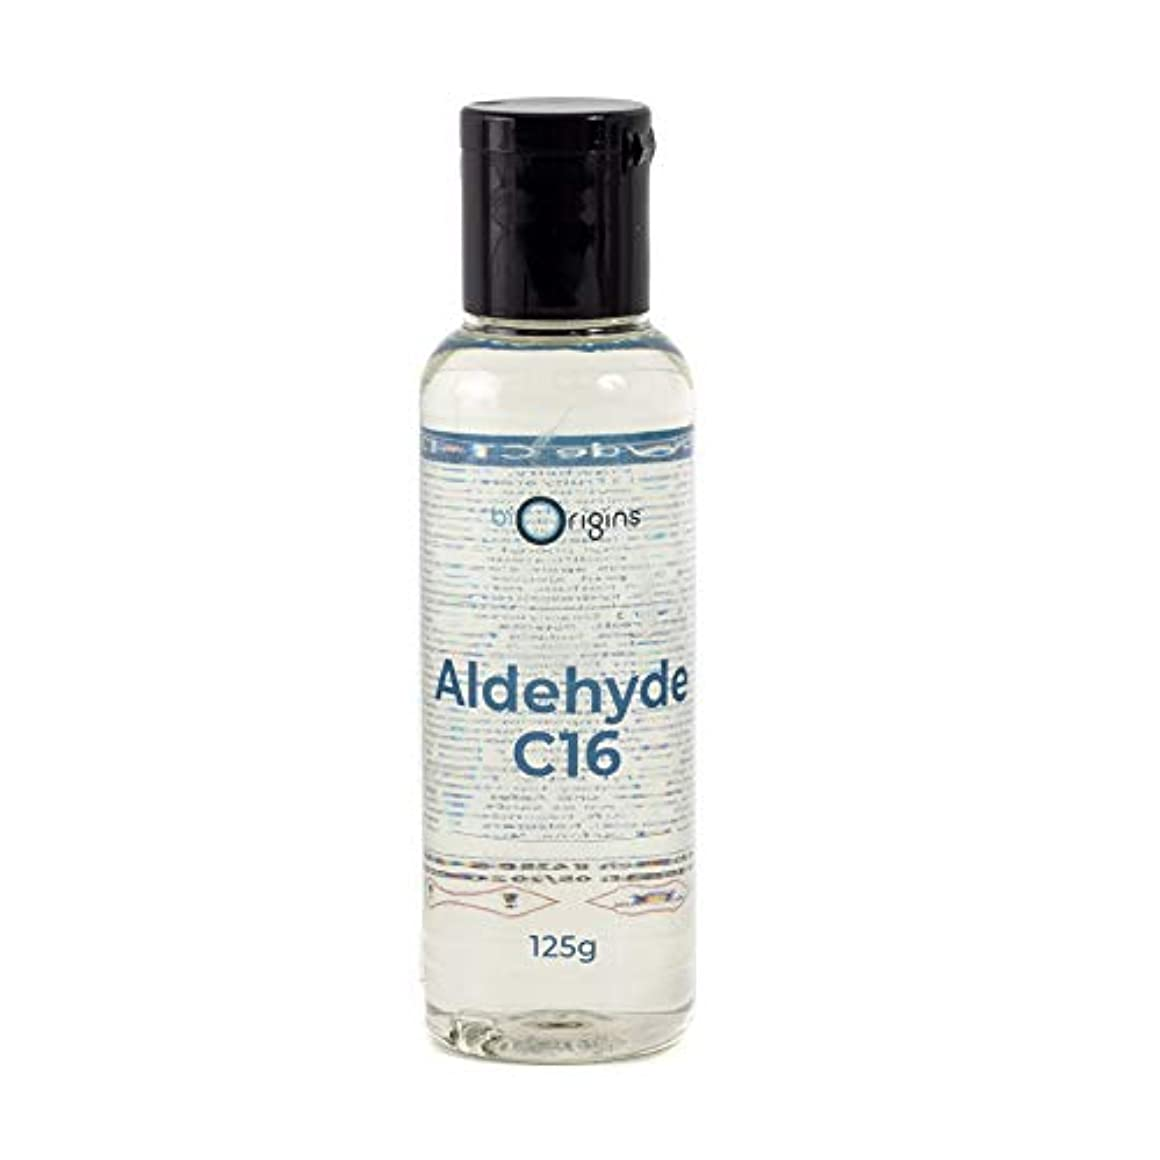 受け入れたプロテスタントログMystic Moments | Aldehyde C16 (Ethyl Methyl Phenyl Glycidate) - 125g